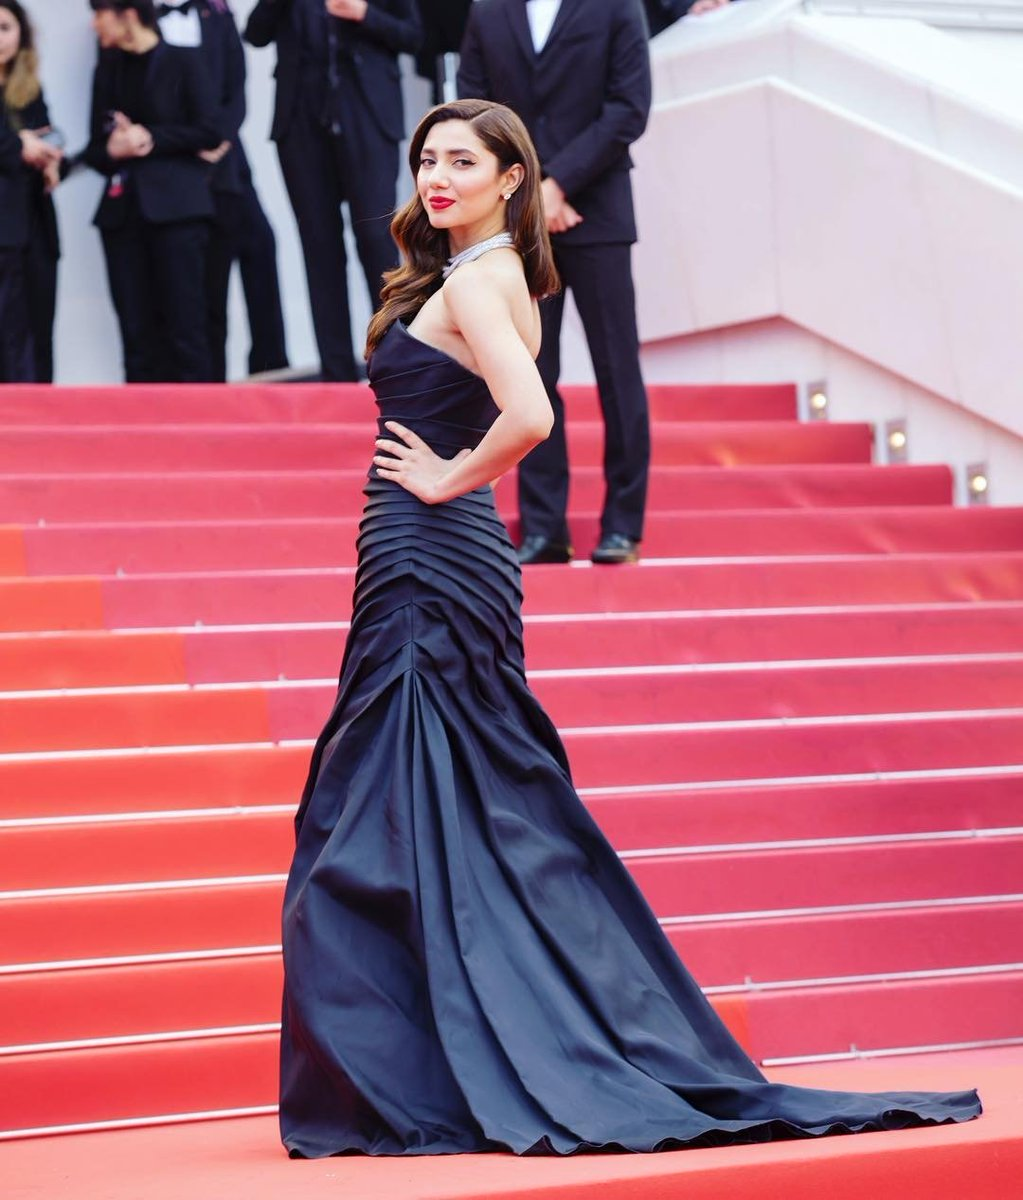 Mahira-Khan-in-Alberta-Ferretti's-Black-Dress-at-Cannes-Film-Festival